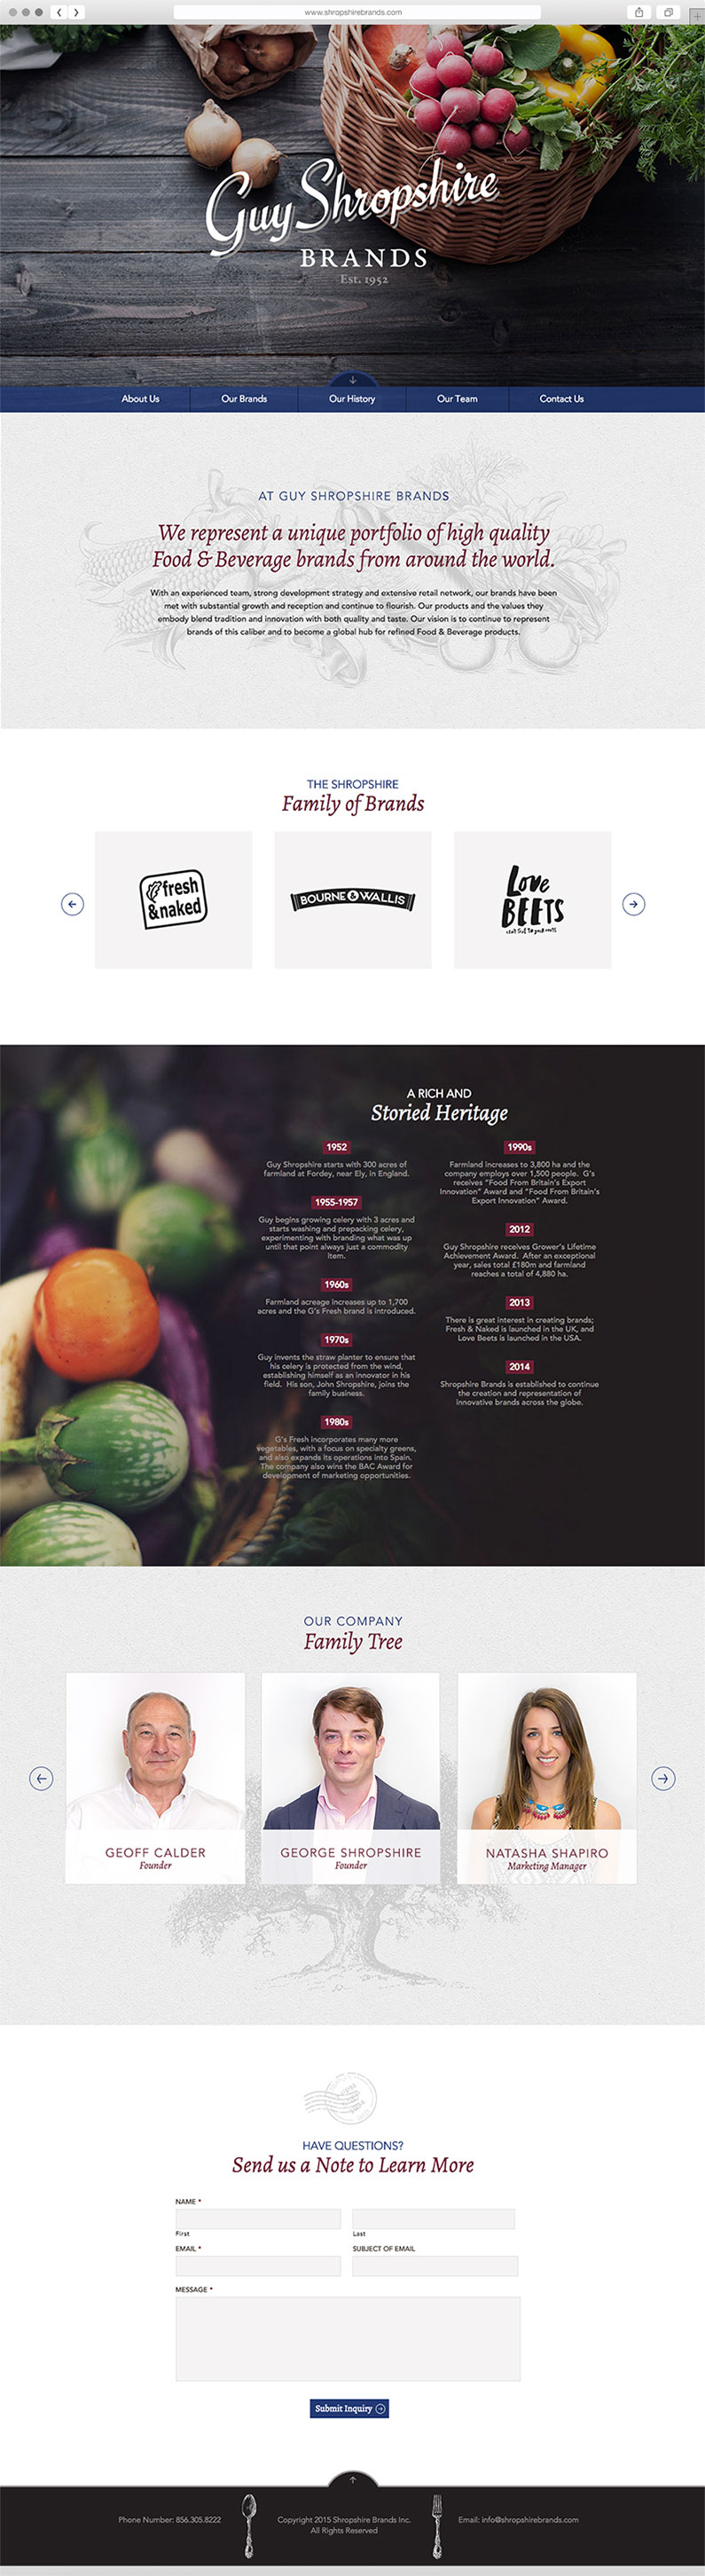 User Friendly Web Design for the Food and Beverage Industry by Push10, Guy Shropshire brands website